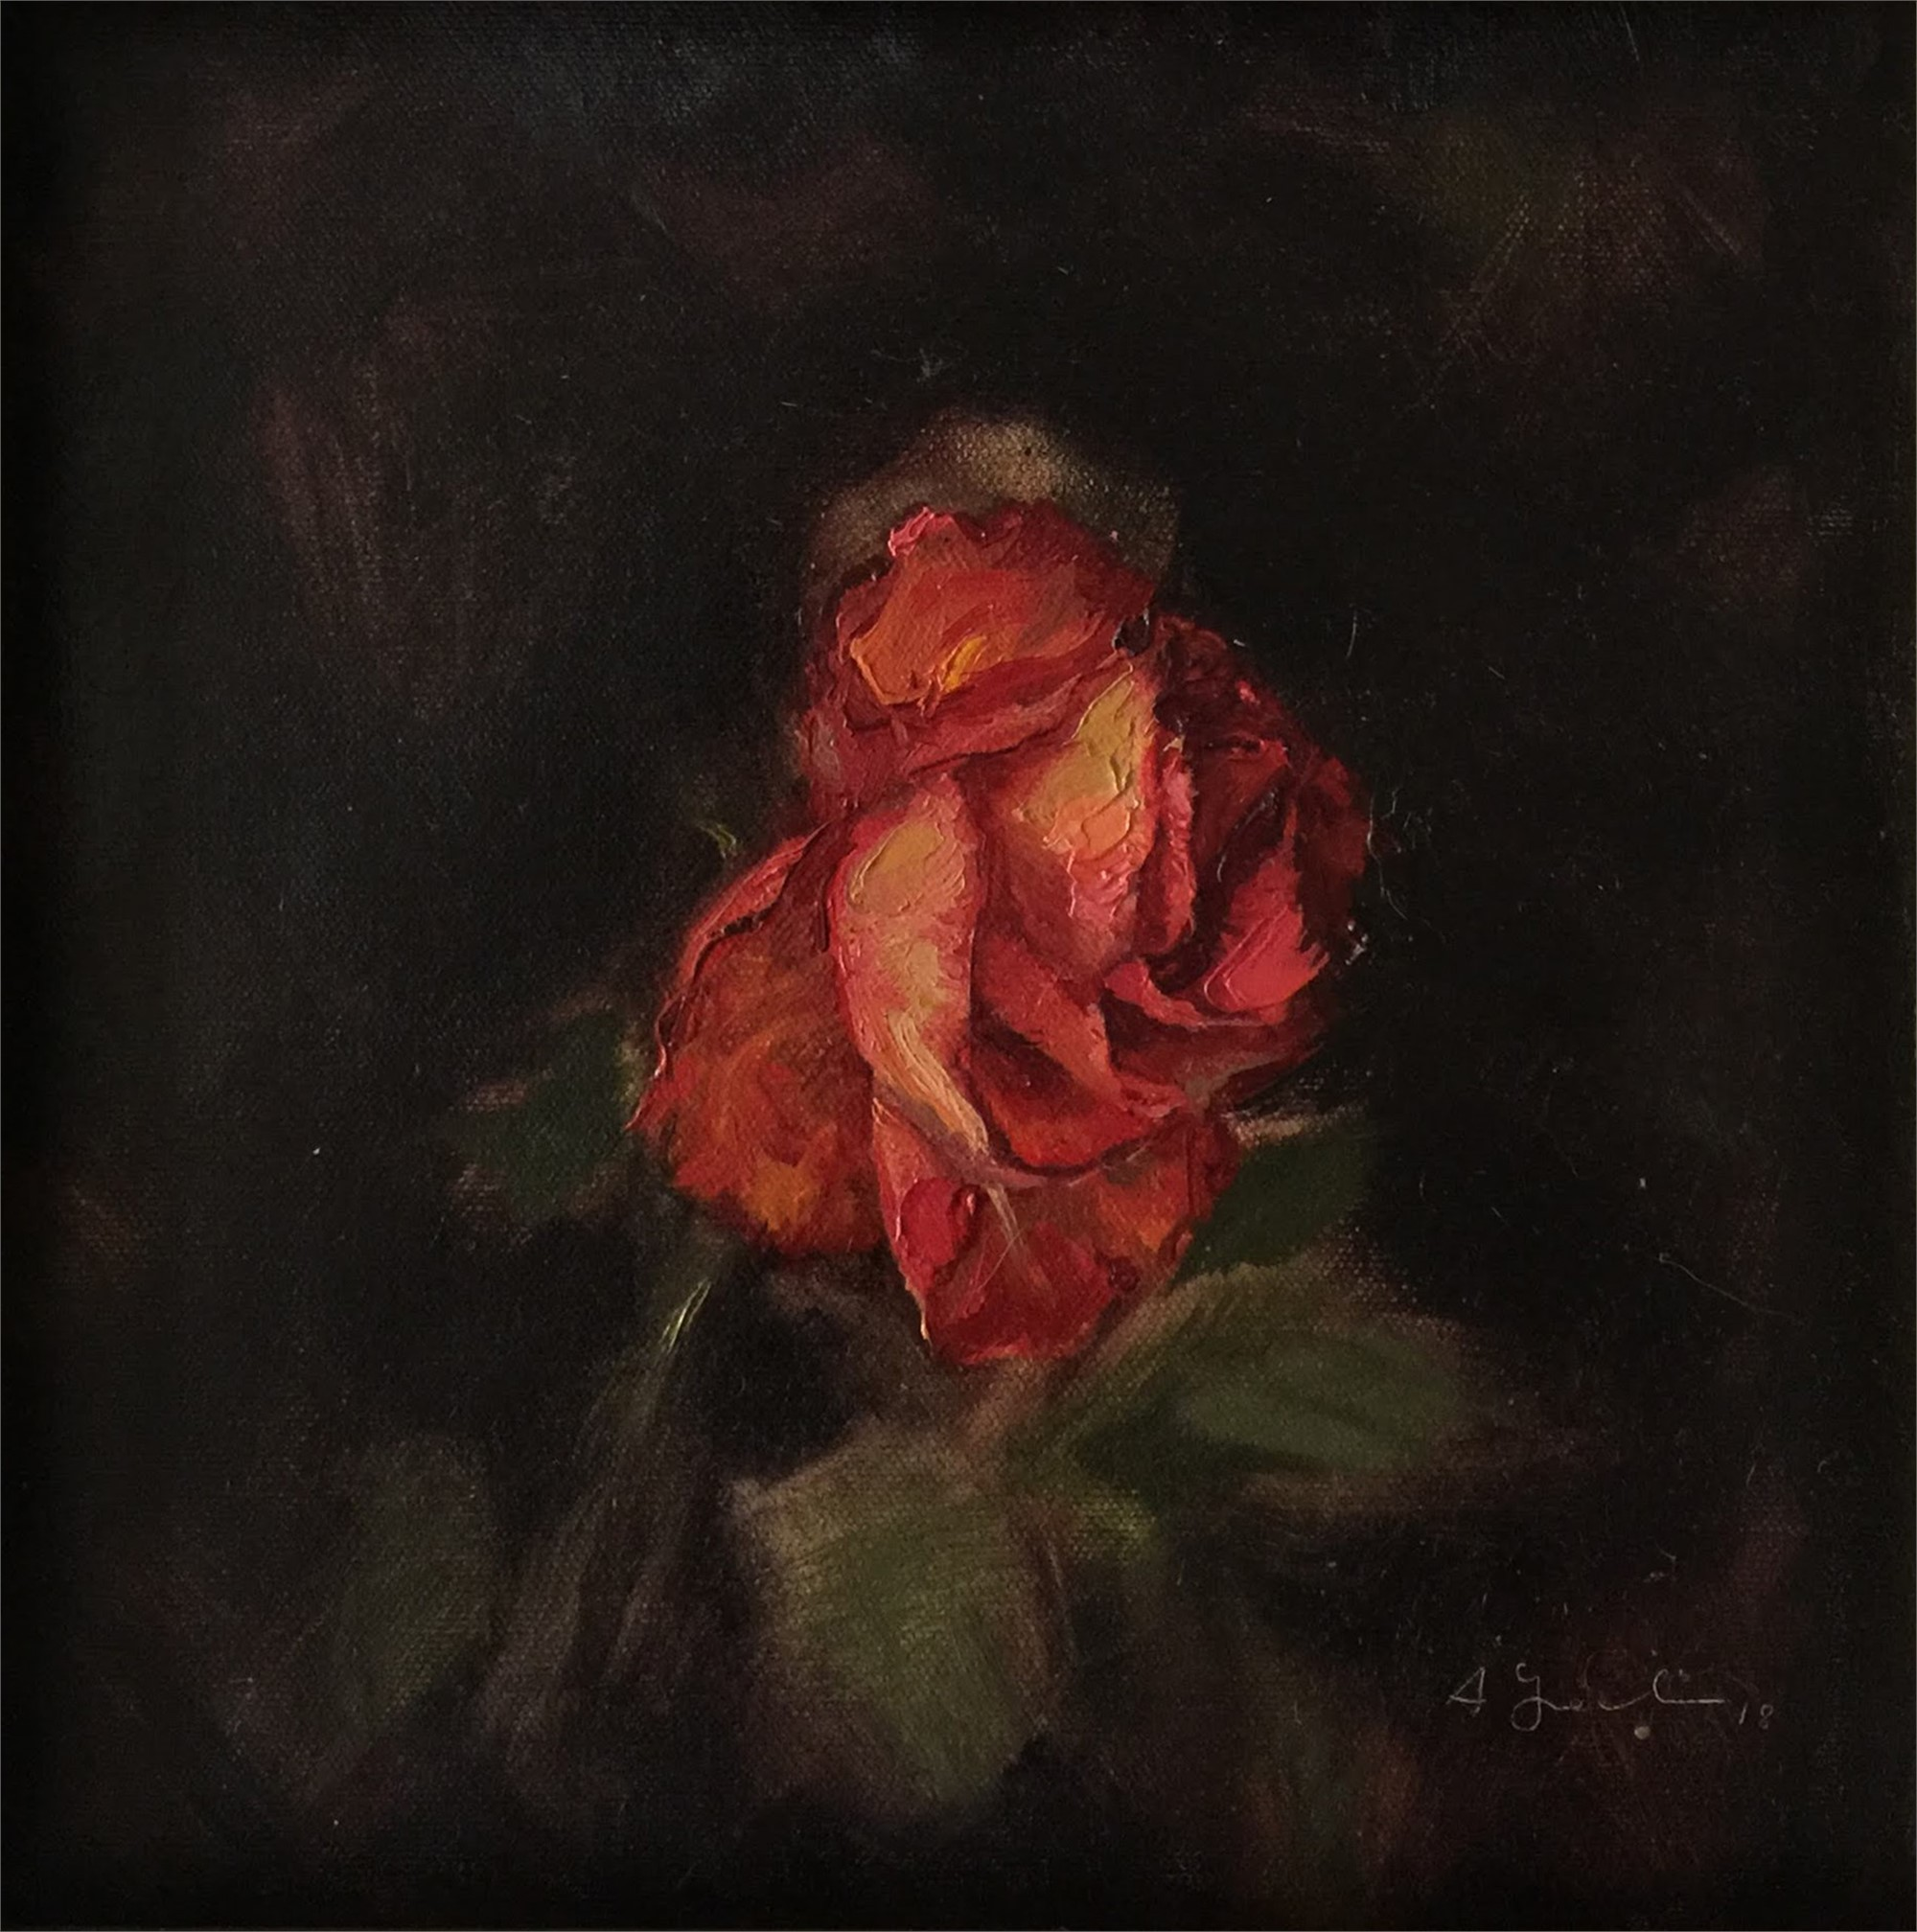 Portrait of a Rose 1 by Agnes Grochulska